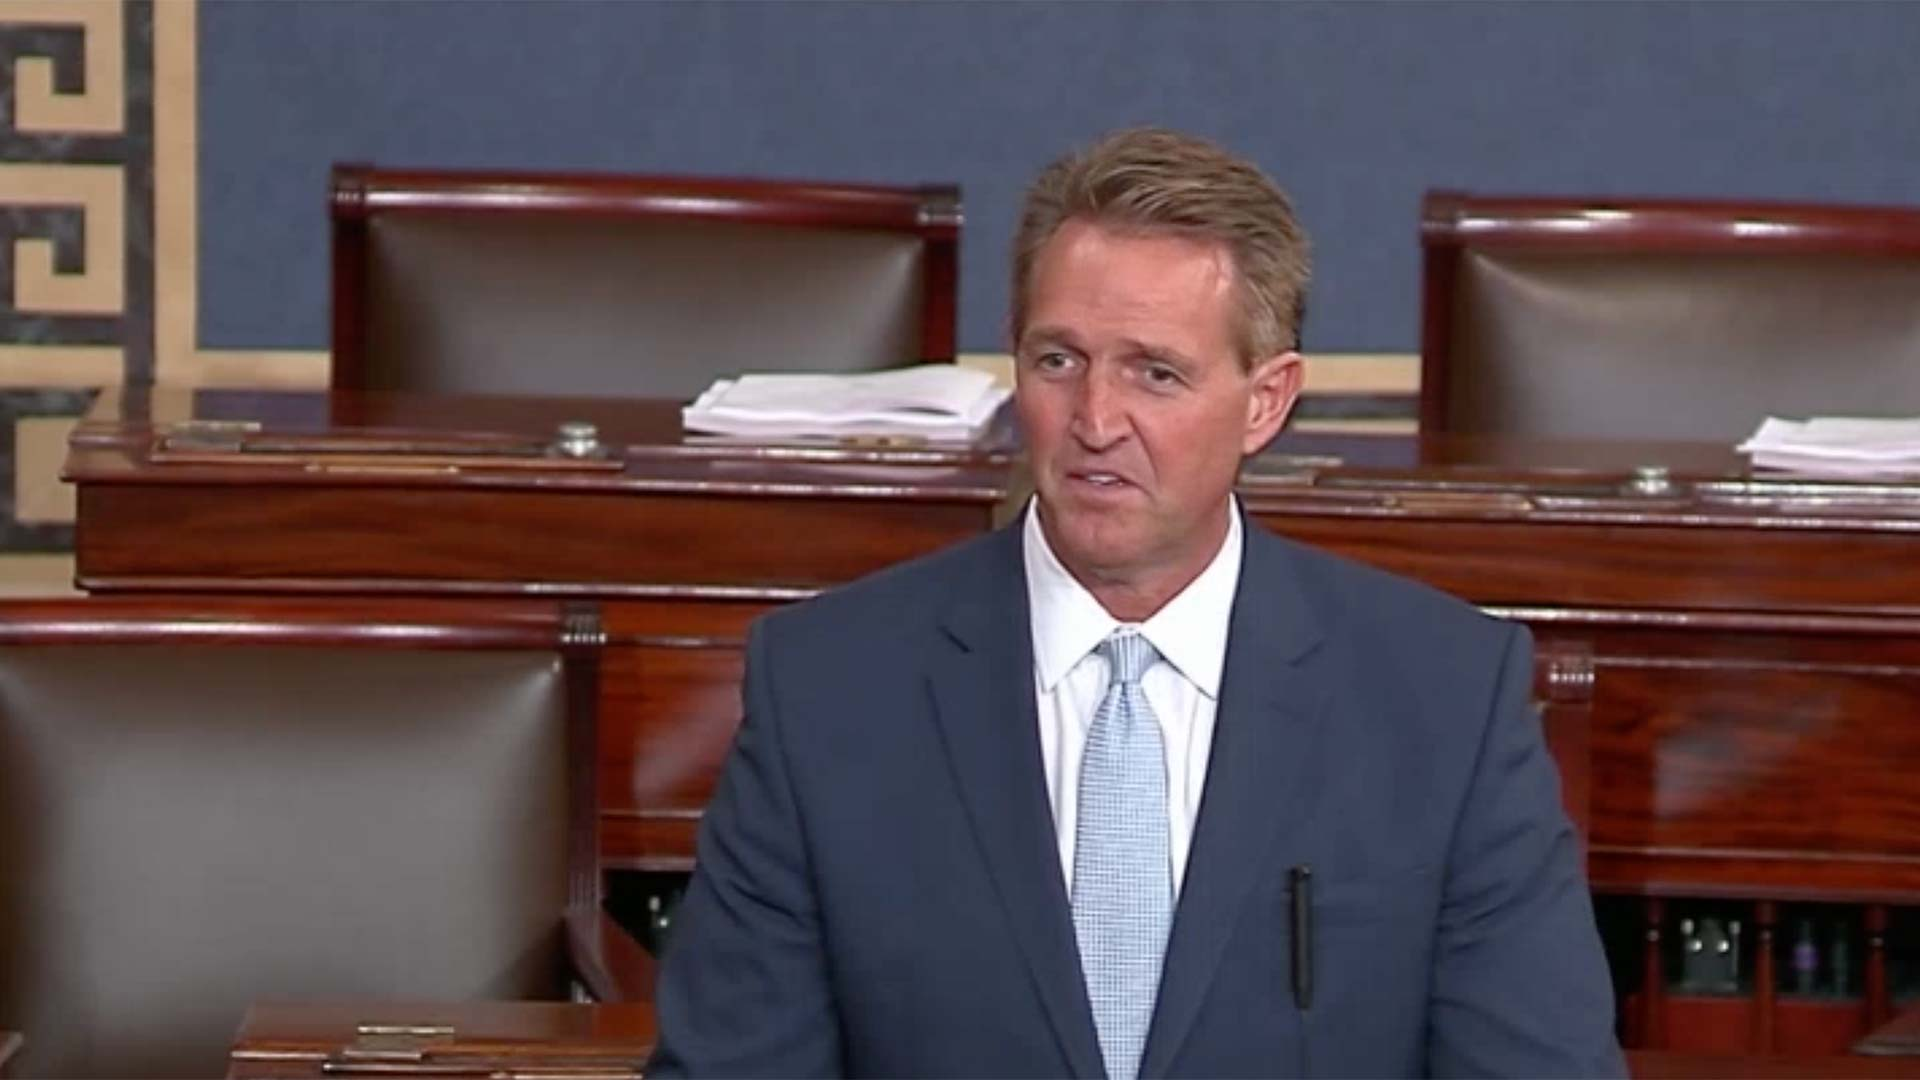 U.S. Sen. Jeff Flake speaks on the Senate floor about sexual assault allegations against Supreme Court nominee Brett Kavanaugh, Sept. 26, 2018.